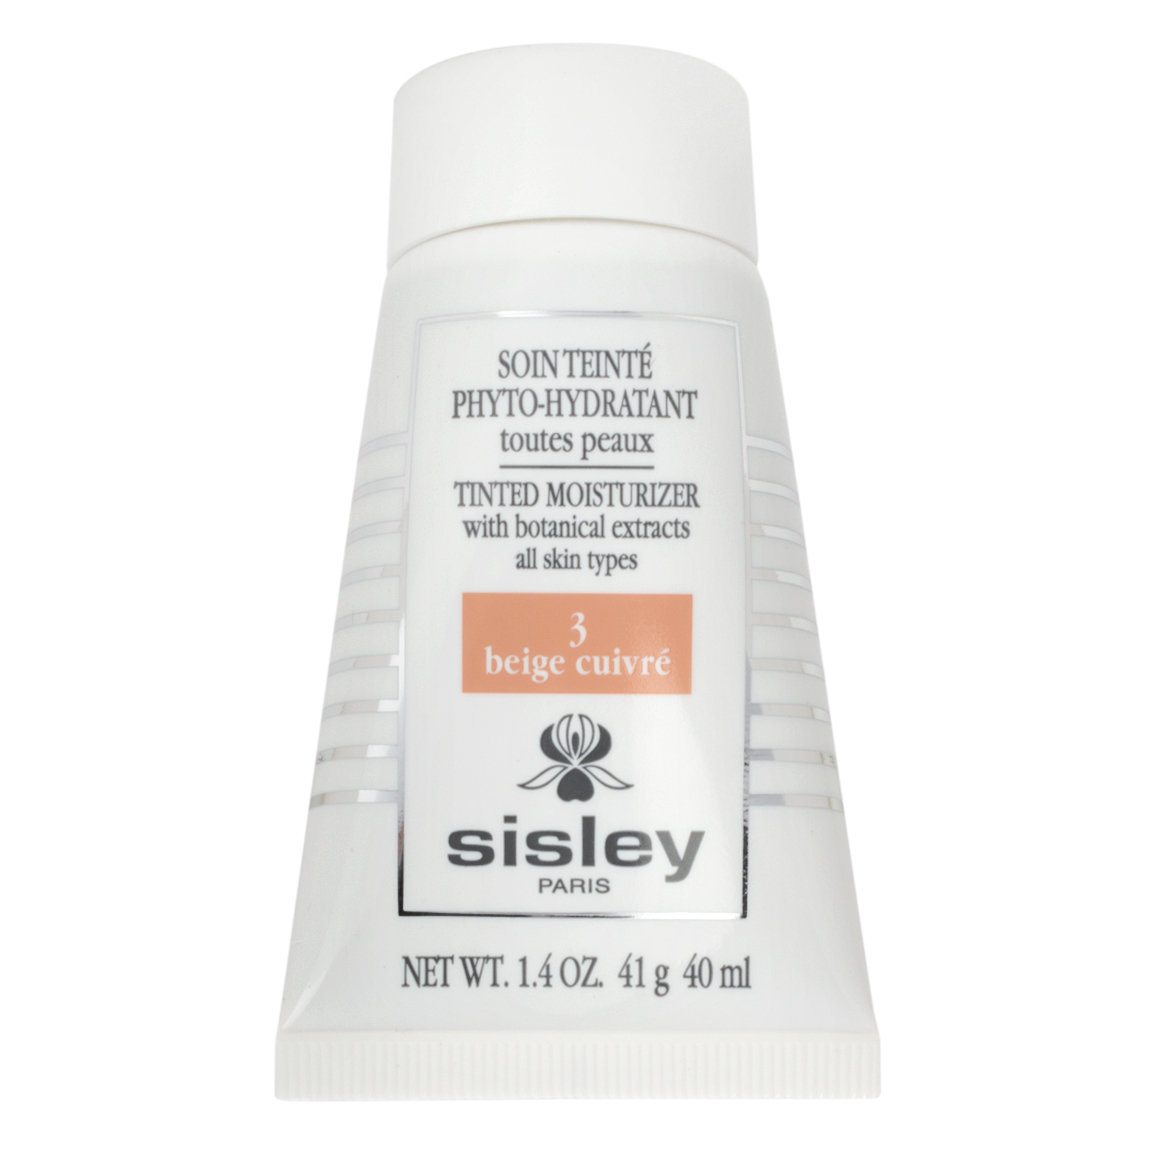 Sisley-Paris Tinted Moisturizer with Botanical Extracts 3 Beige Cuivré alternative view 1.